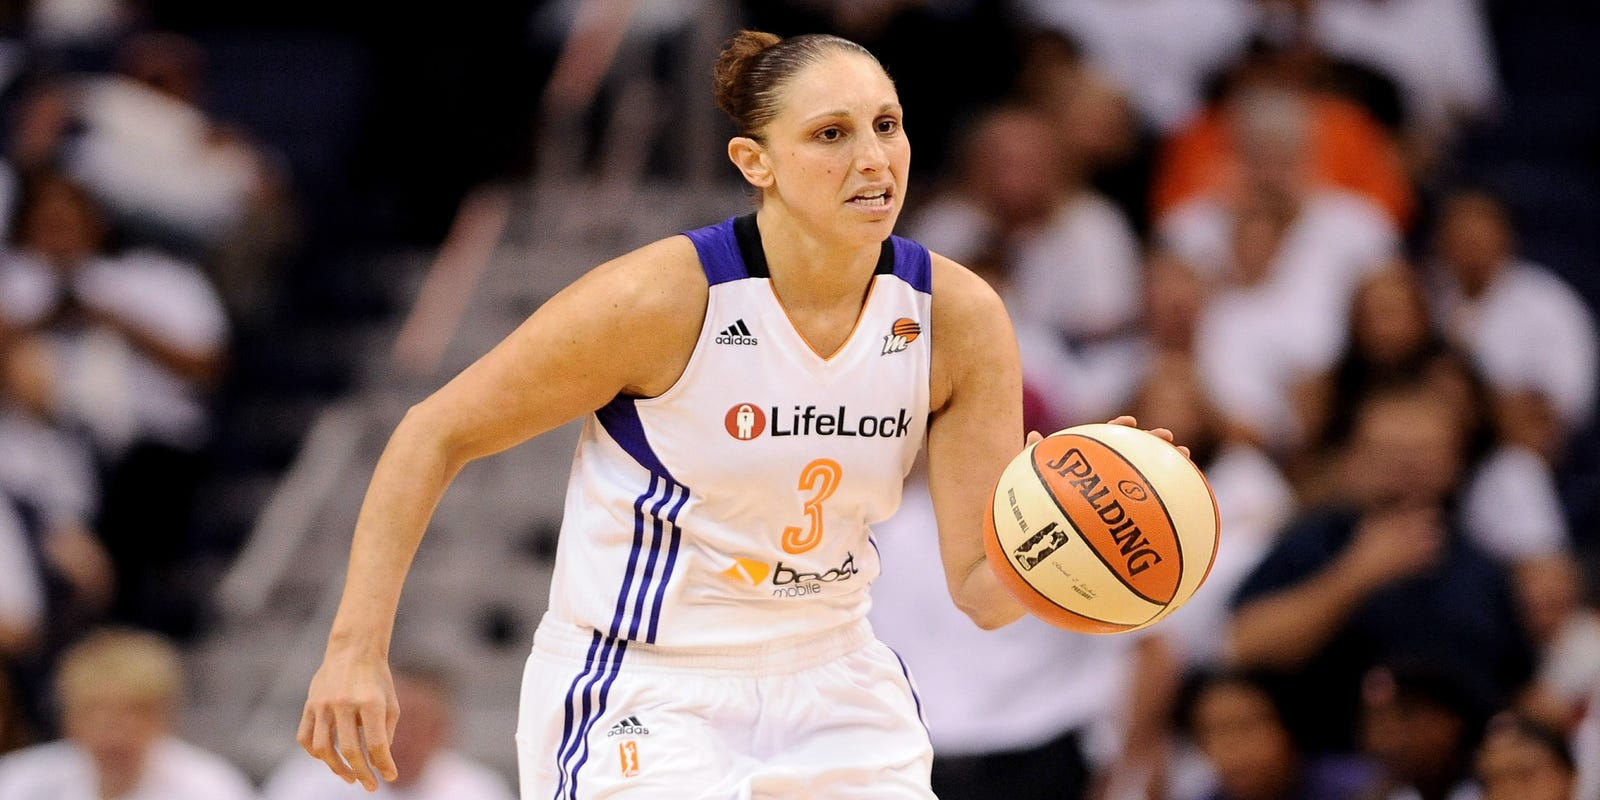 Who is the greatest women's basketball player ever?